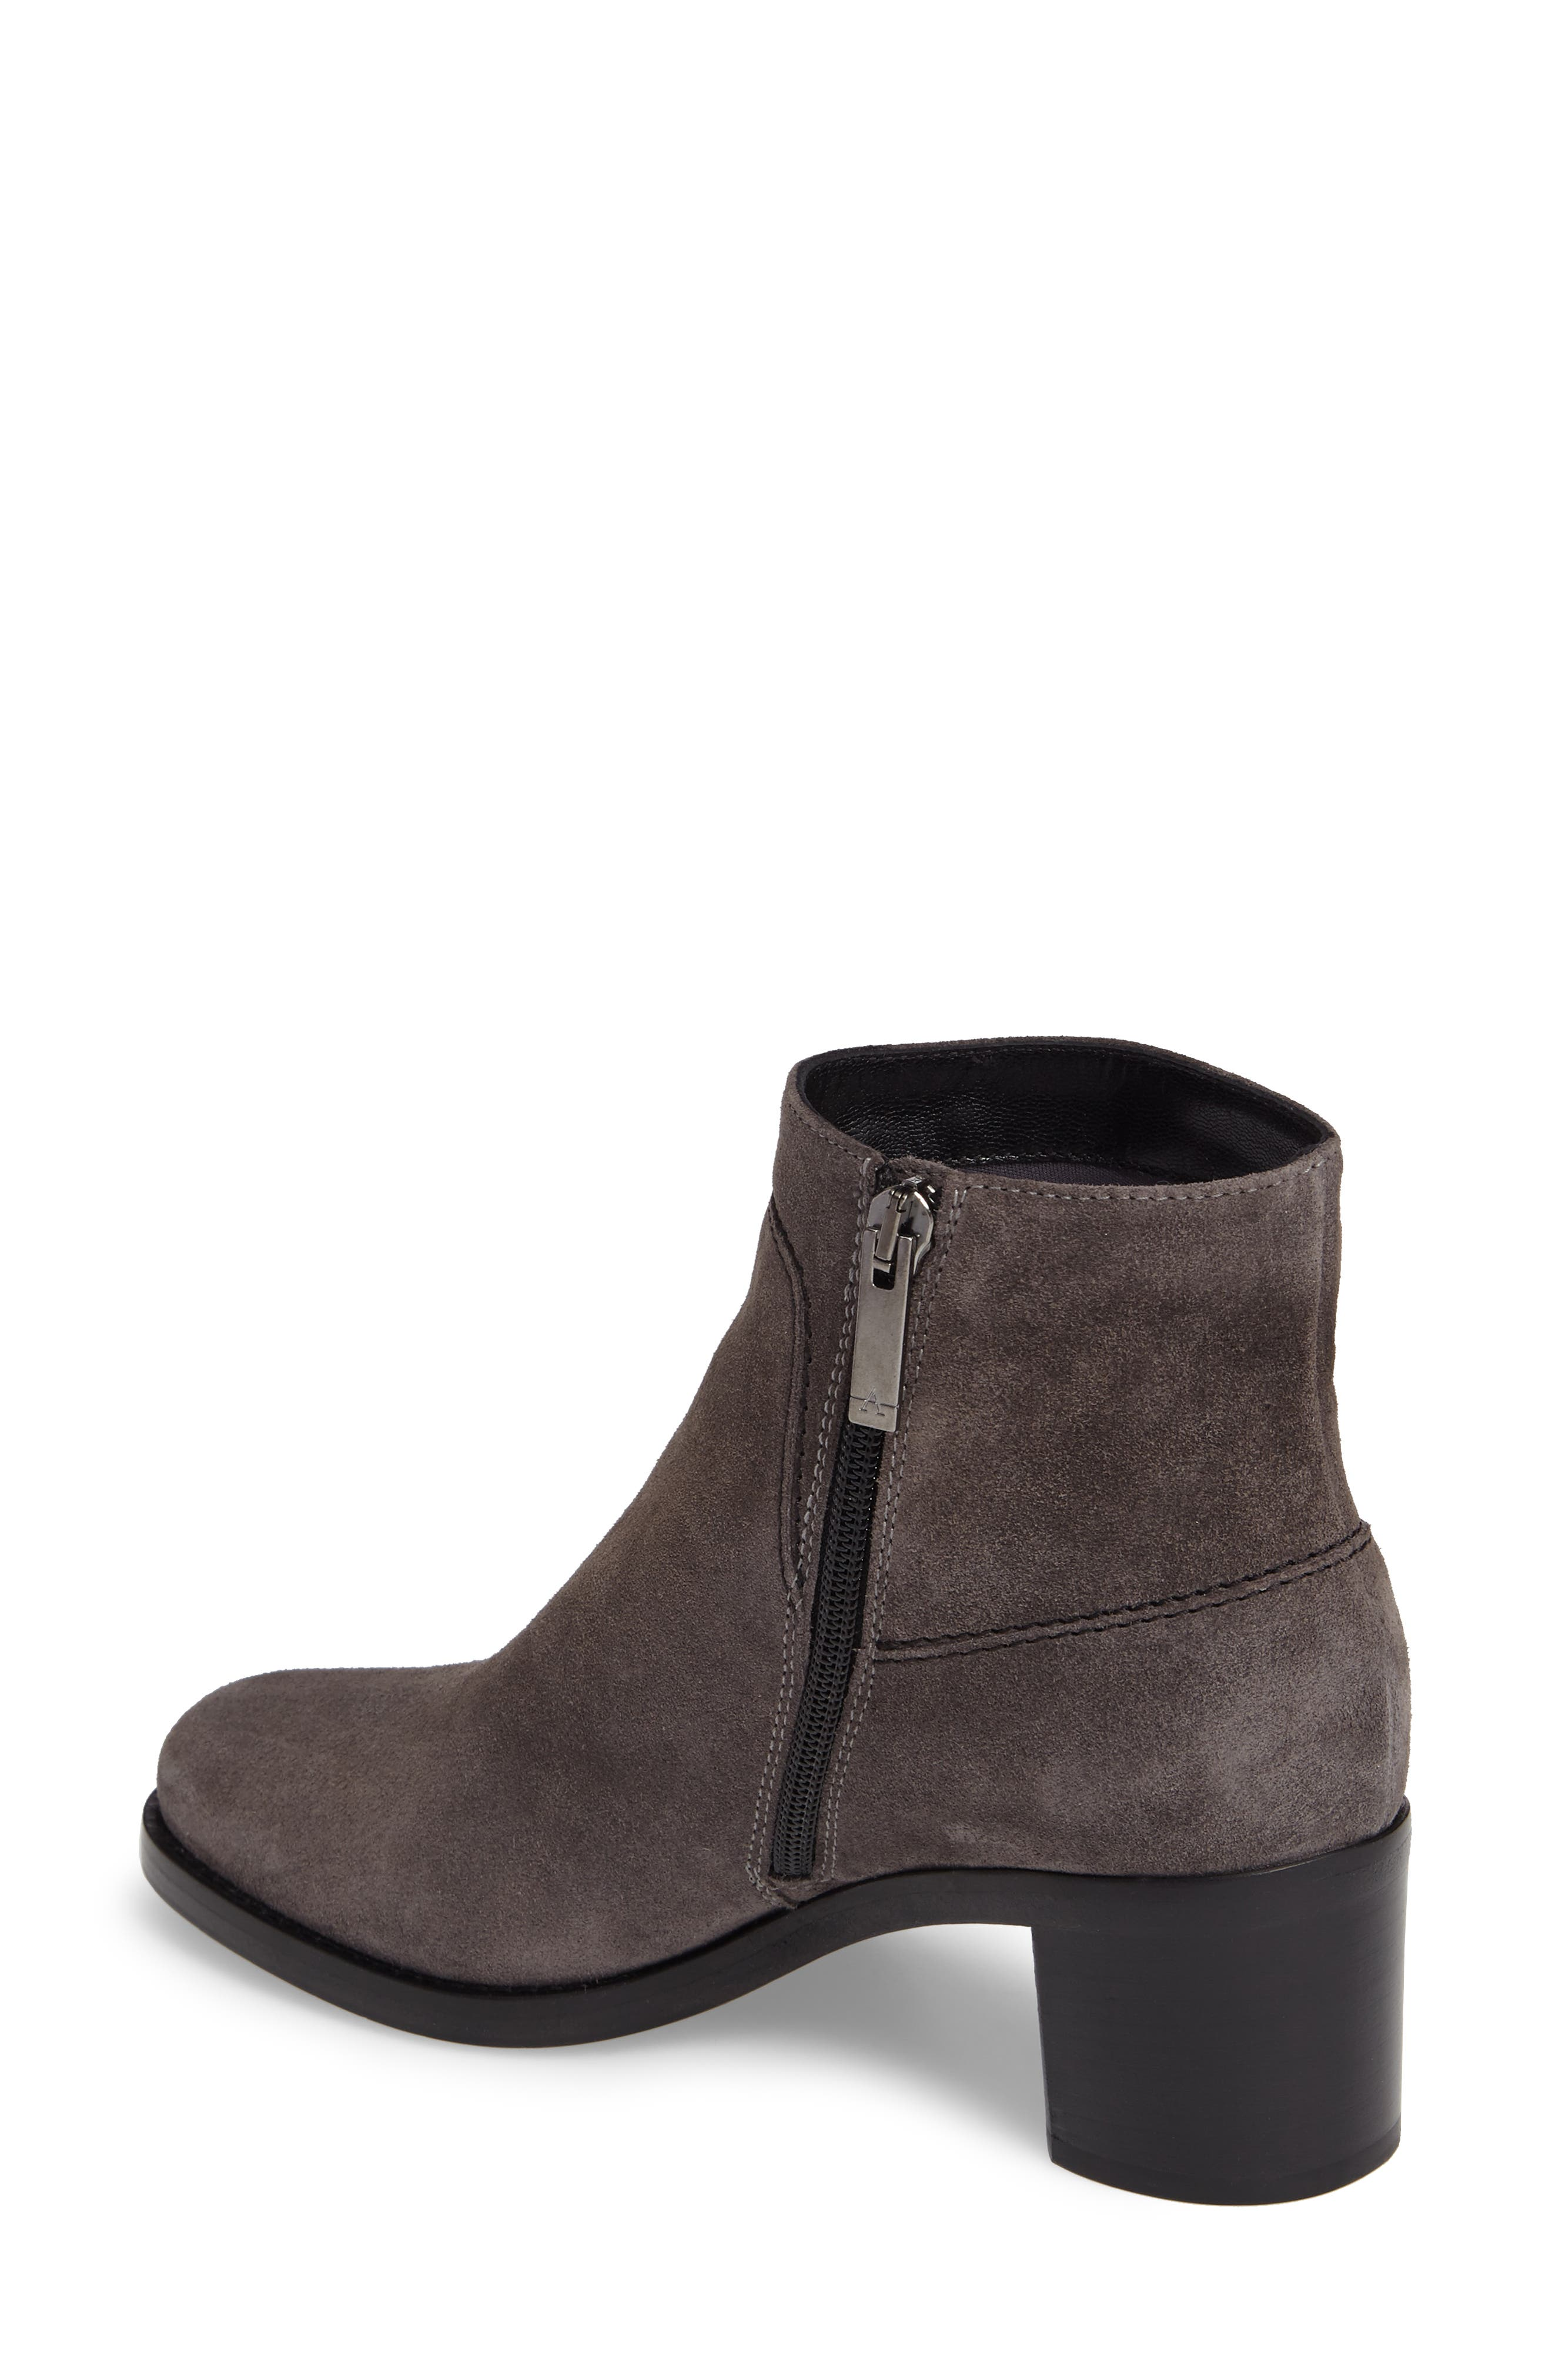 Alternate Image 2  - Aquatalia Tilda Weatherproof Bootie (Women)